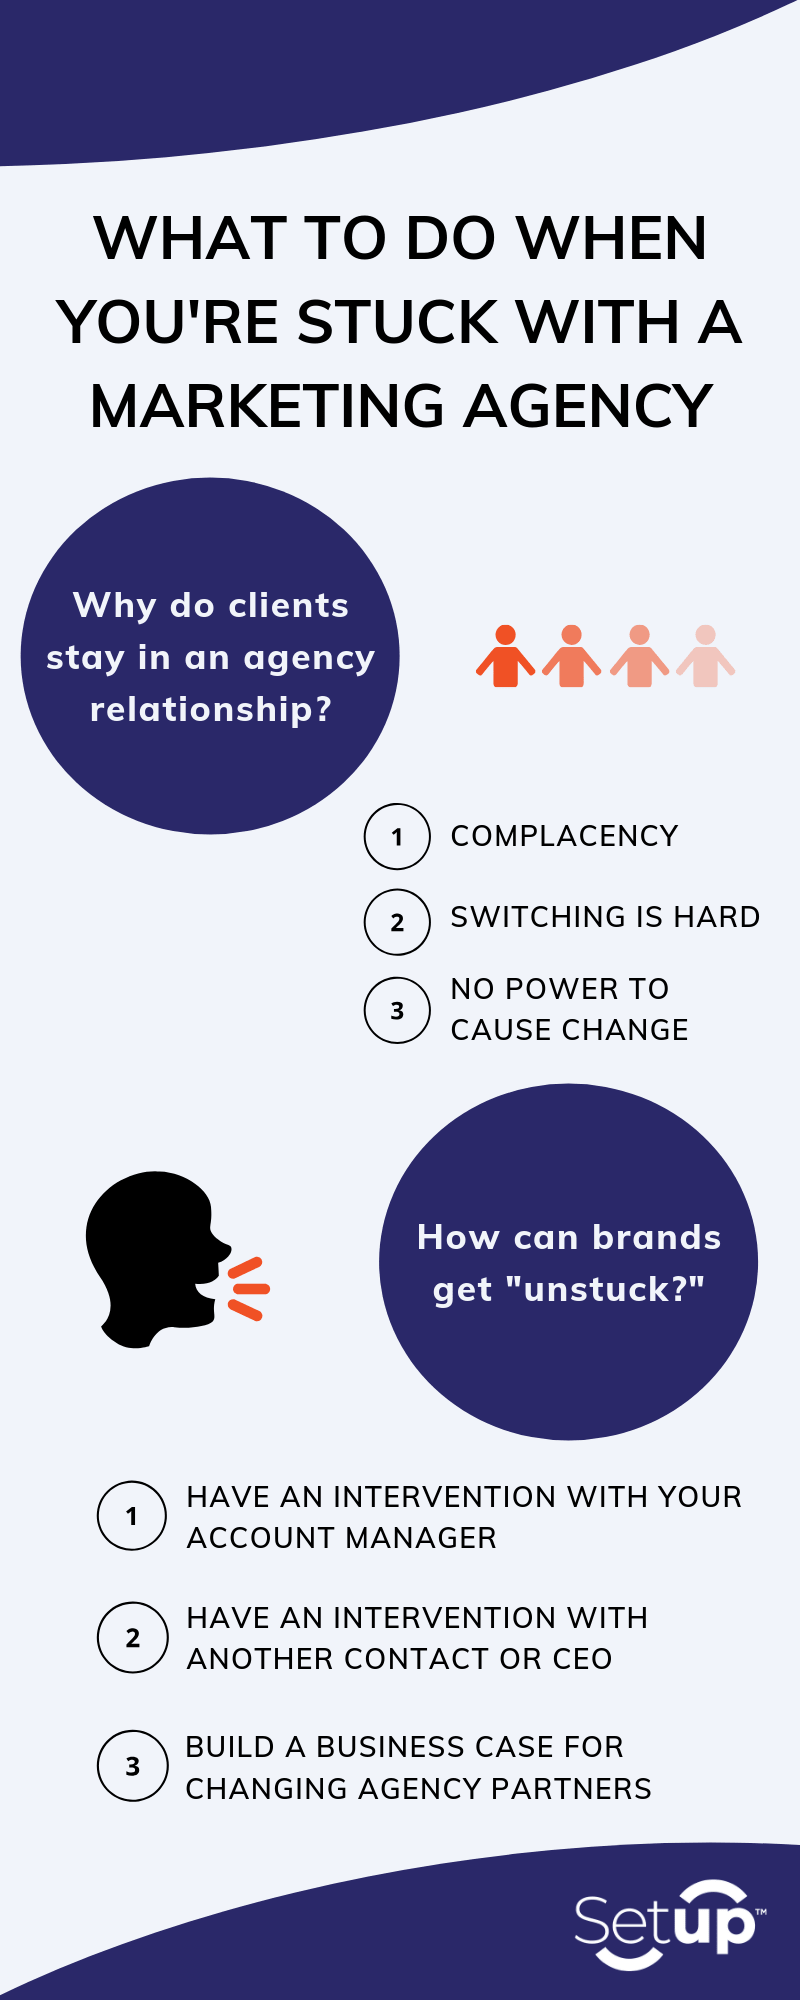 What to Do When You're Stuck with a Marketing Agency